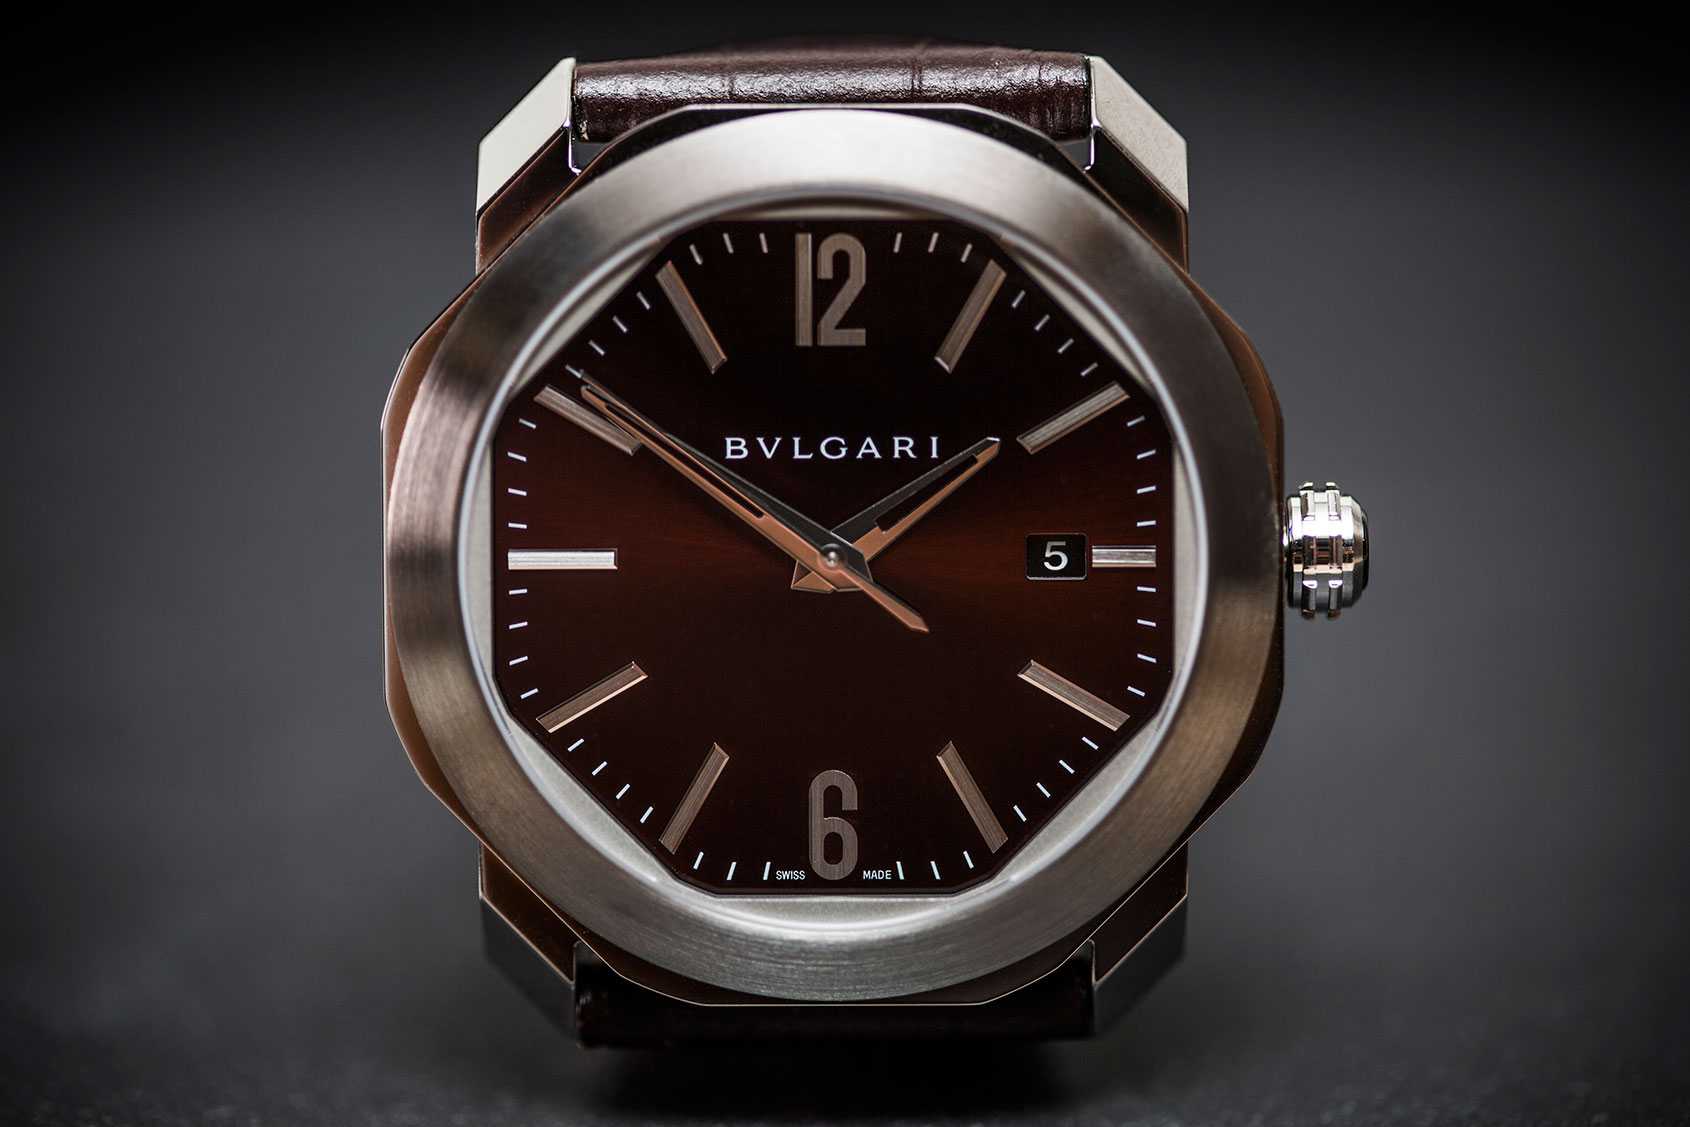 HANDS-ON: A softer shape – the Bulgari Octo Roma